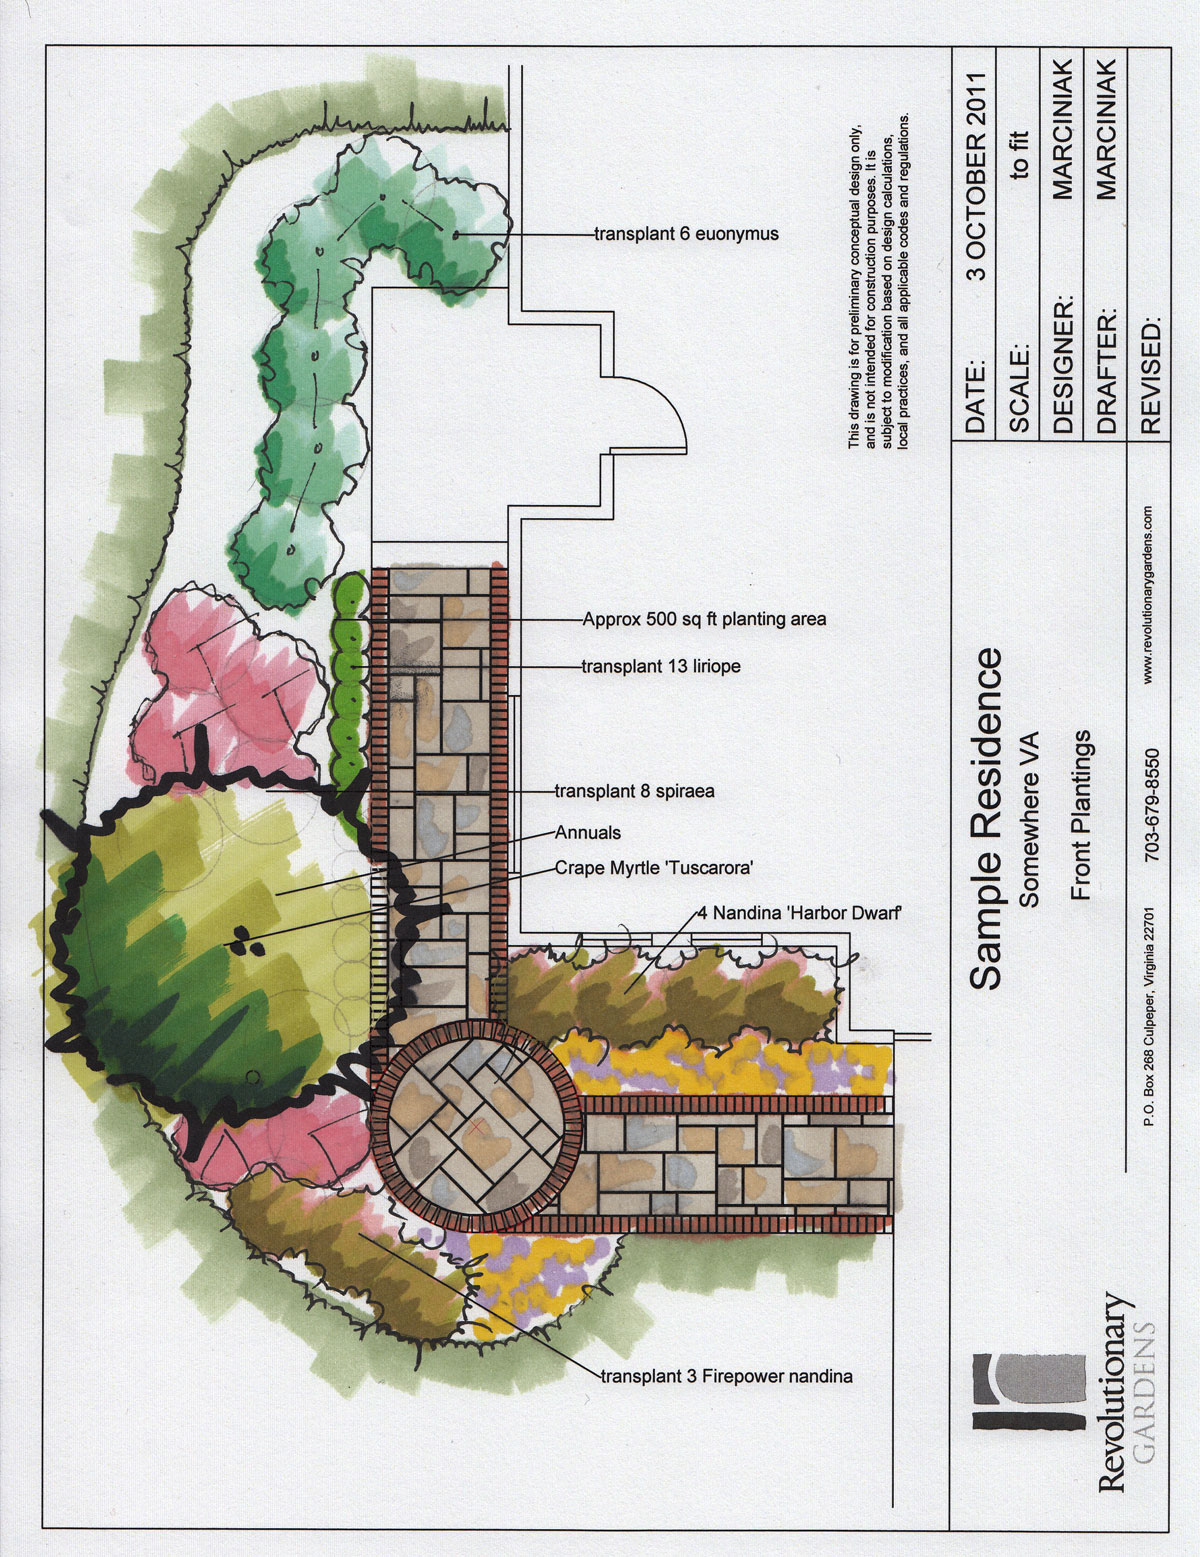 http://www.revolutionarygardens.com/wp-content/uploads/2013/02/Colored-Townhouse-Landscape.jpg